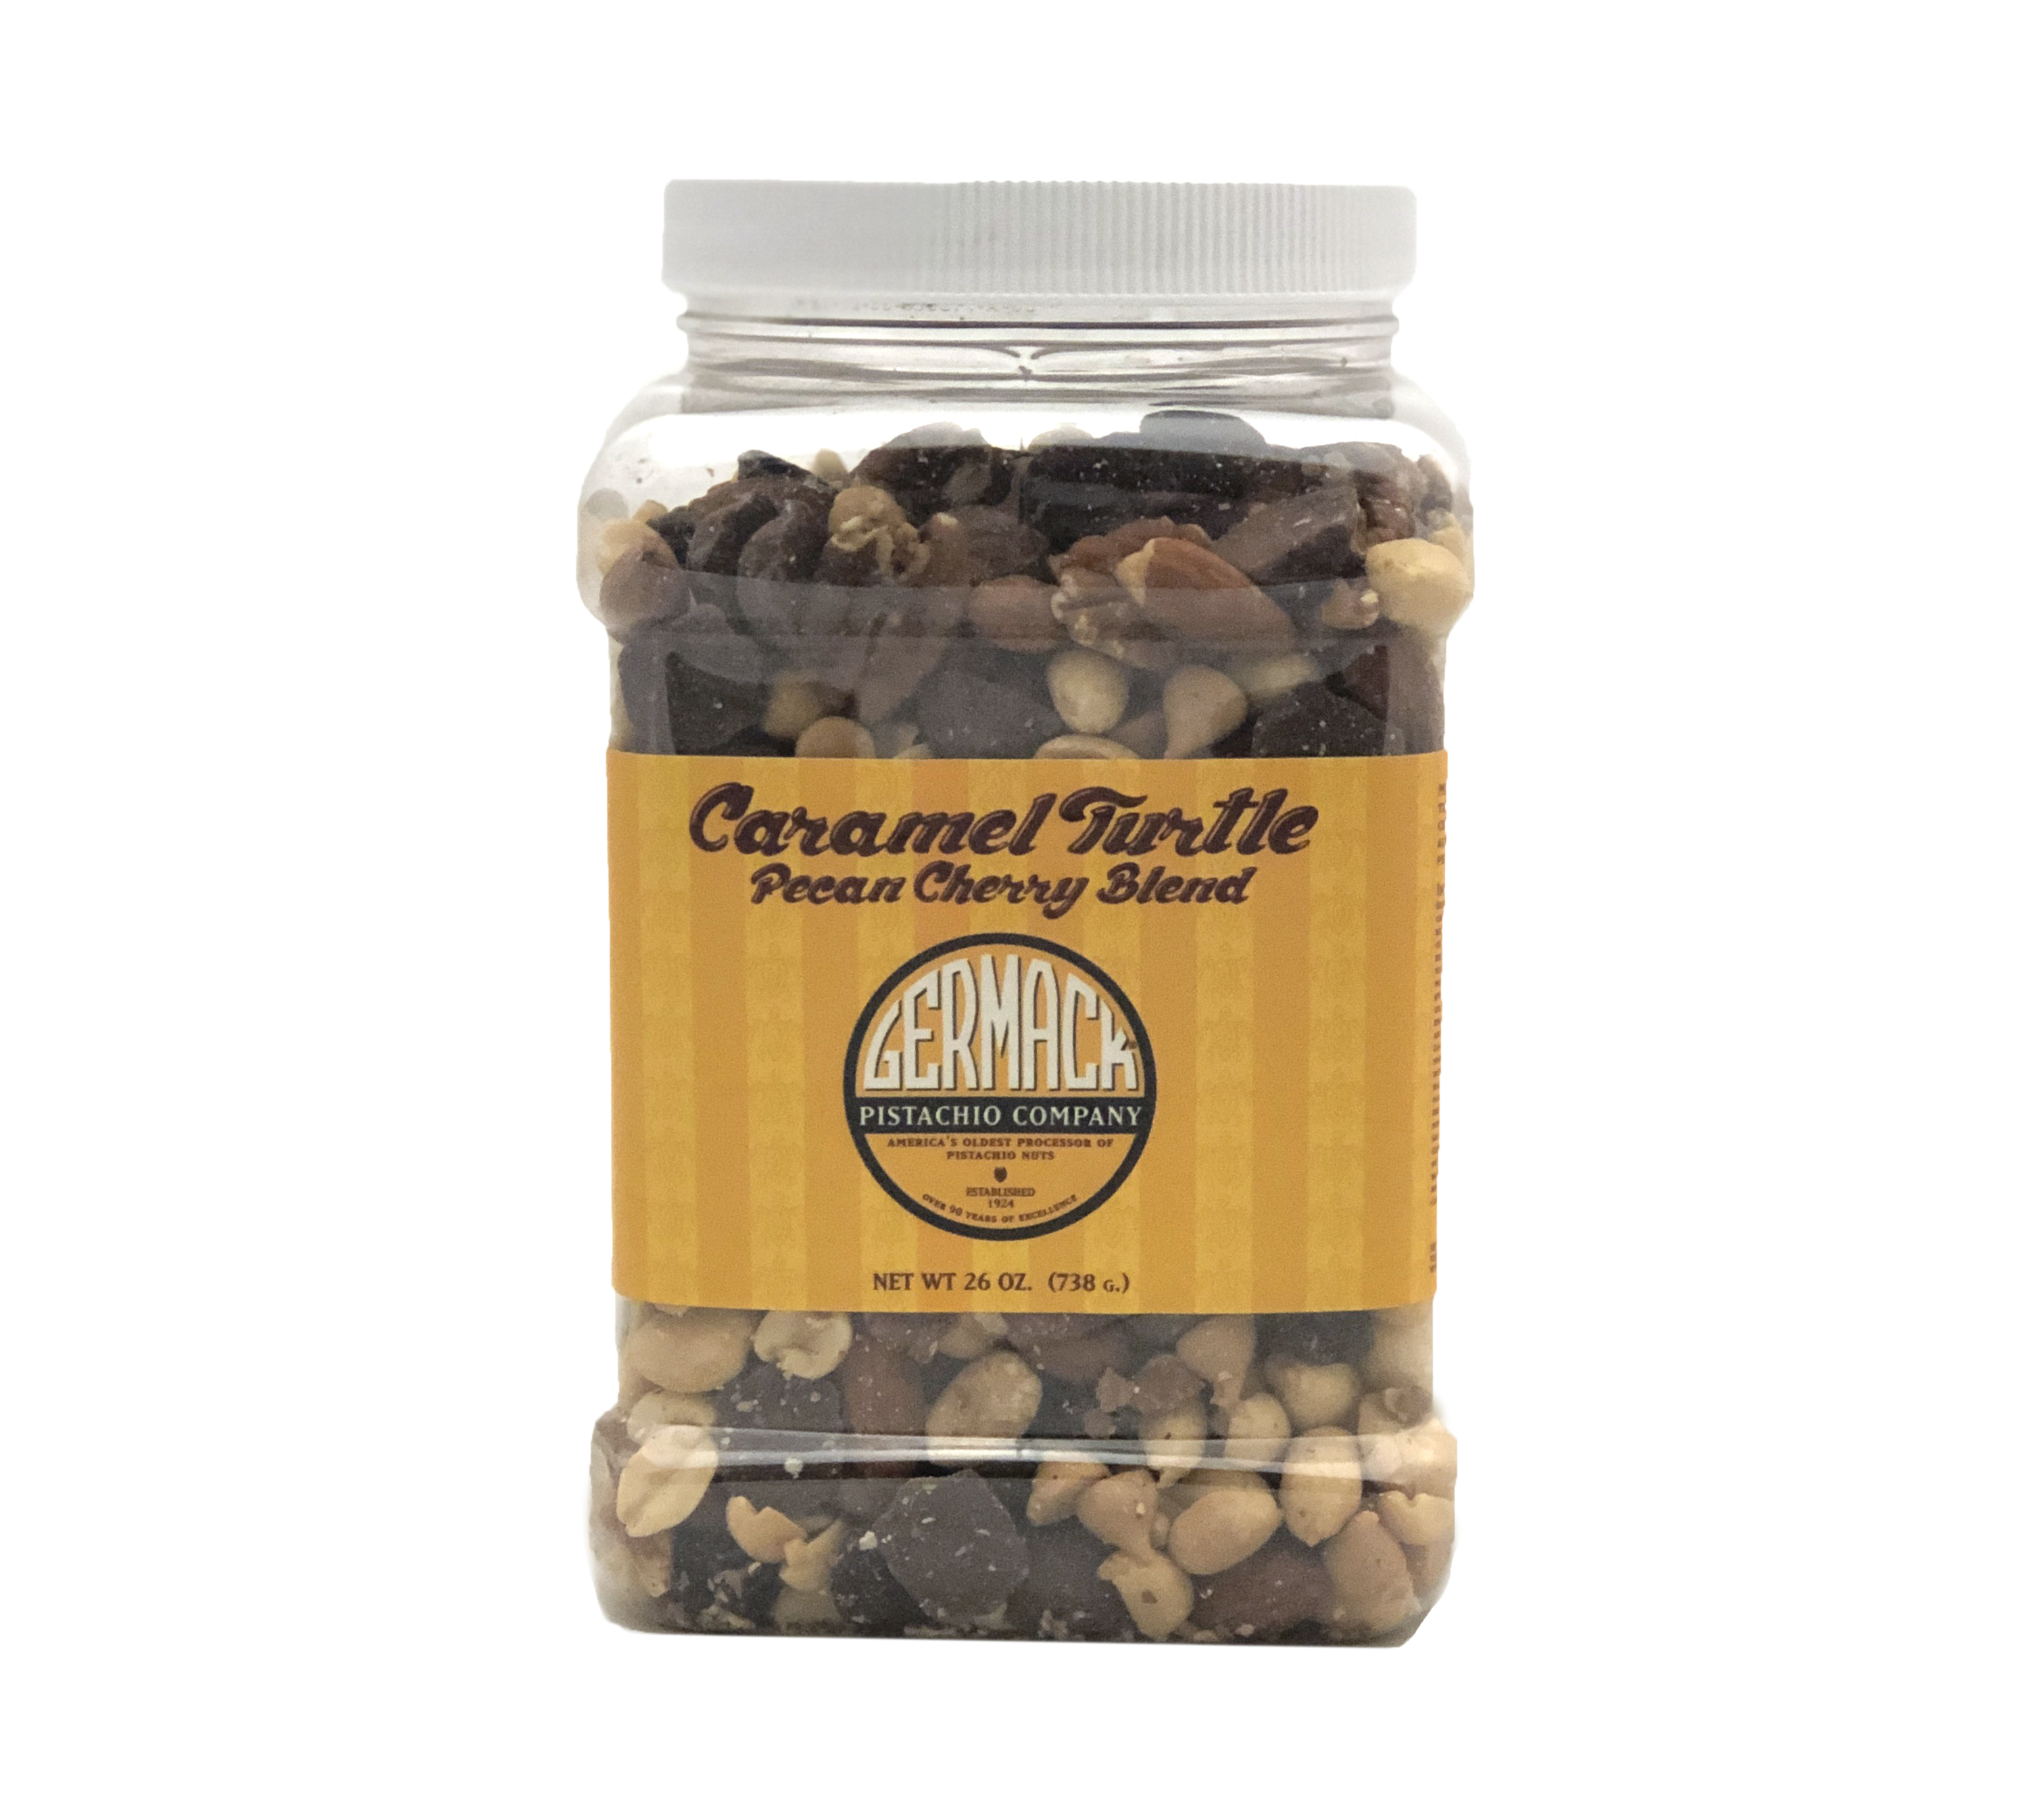 Picture Caramel Turtle Pecan Cherry Blend - 26oz Jar